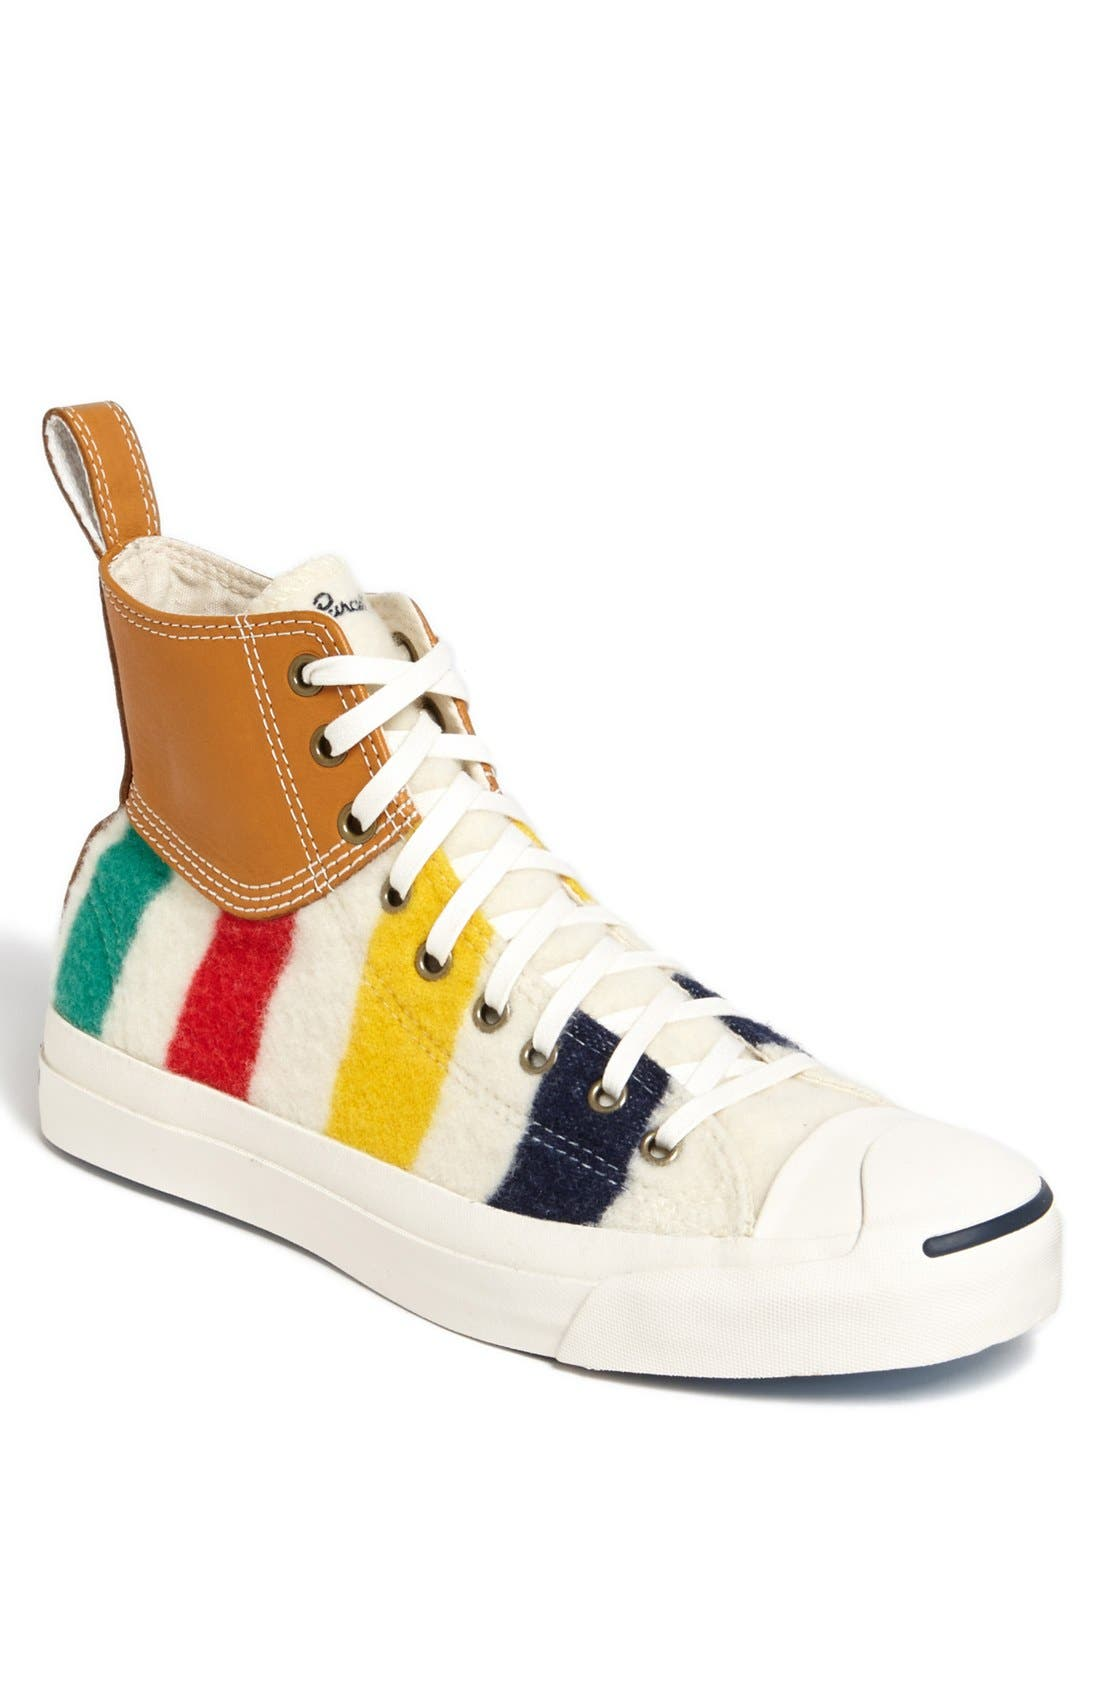 Alternate Image 1 Selected - Converse 'Jack Purcell - Duck' Sneaker